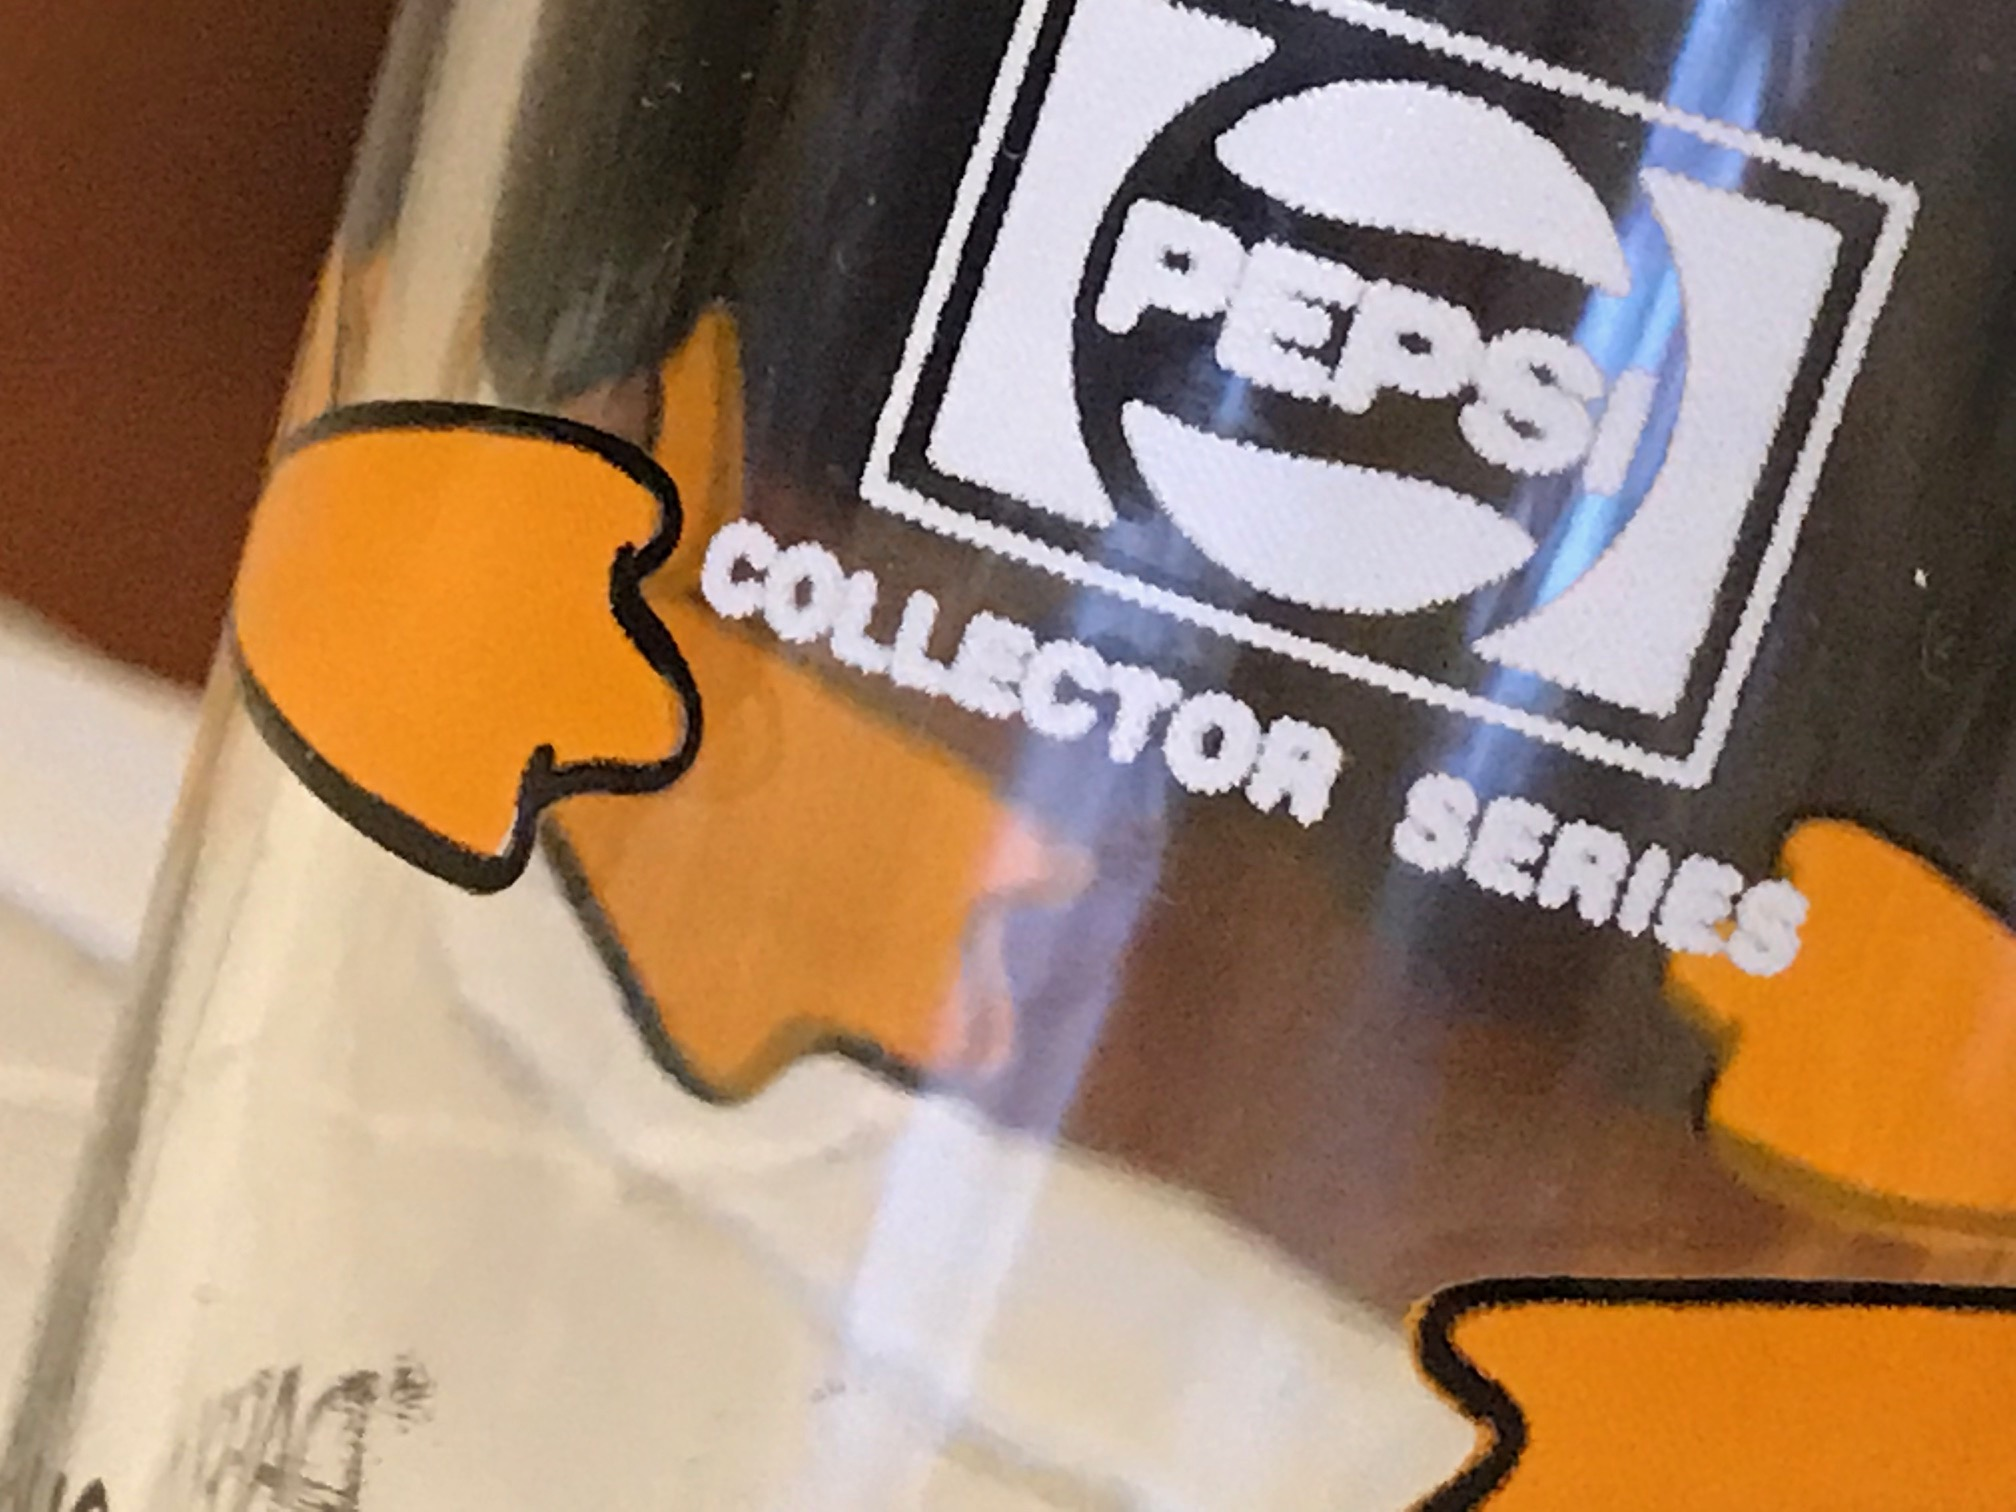 1973 Warner Brothers Pepsi Collector Series Daffy Duck Drinking Glass: 71,800 ppm Lead (90 ppm is unsafe for kids.)